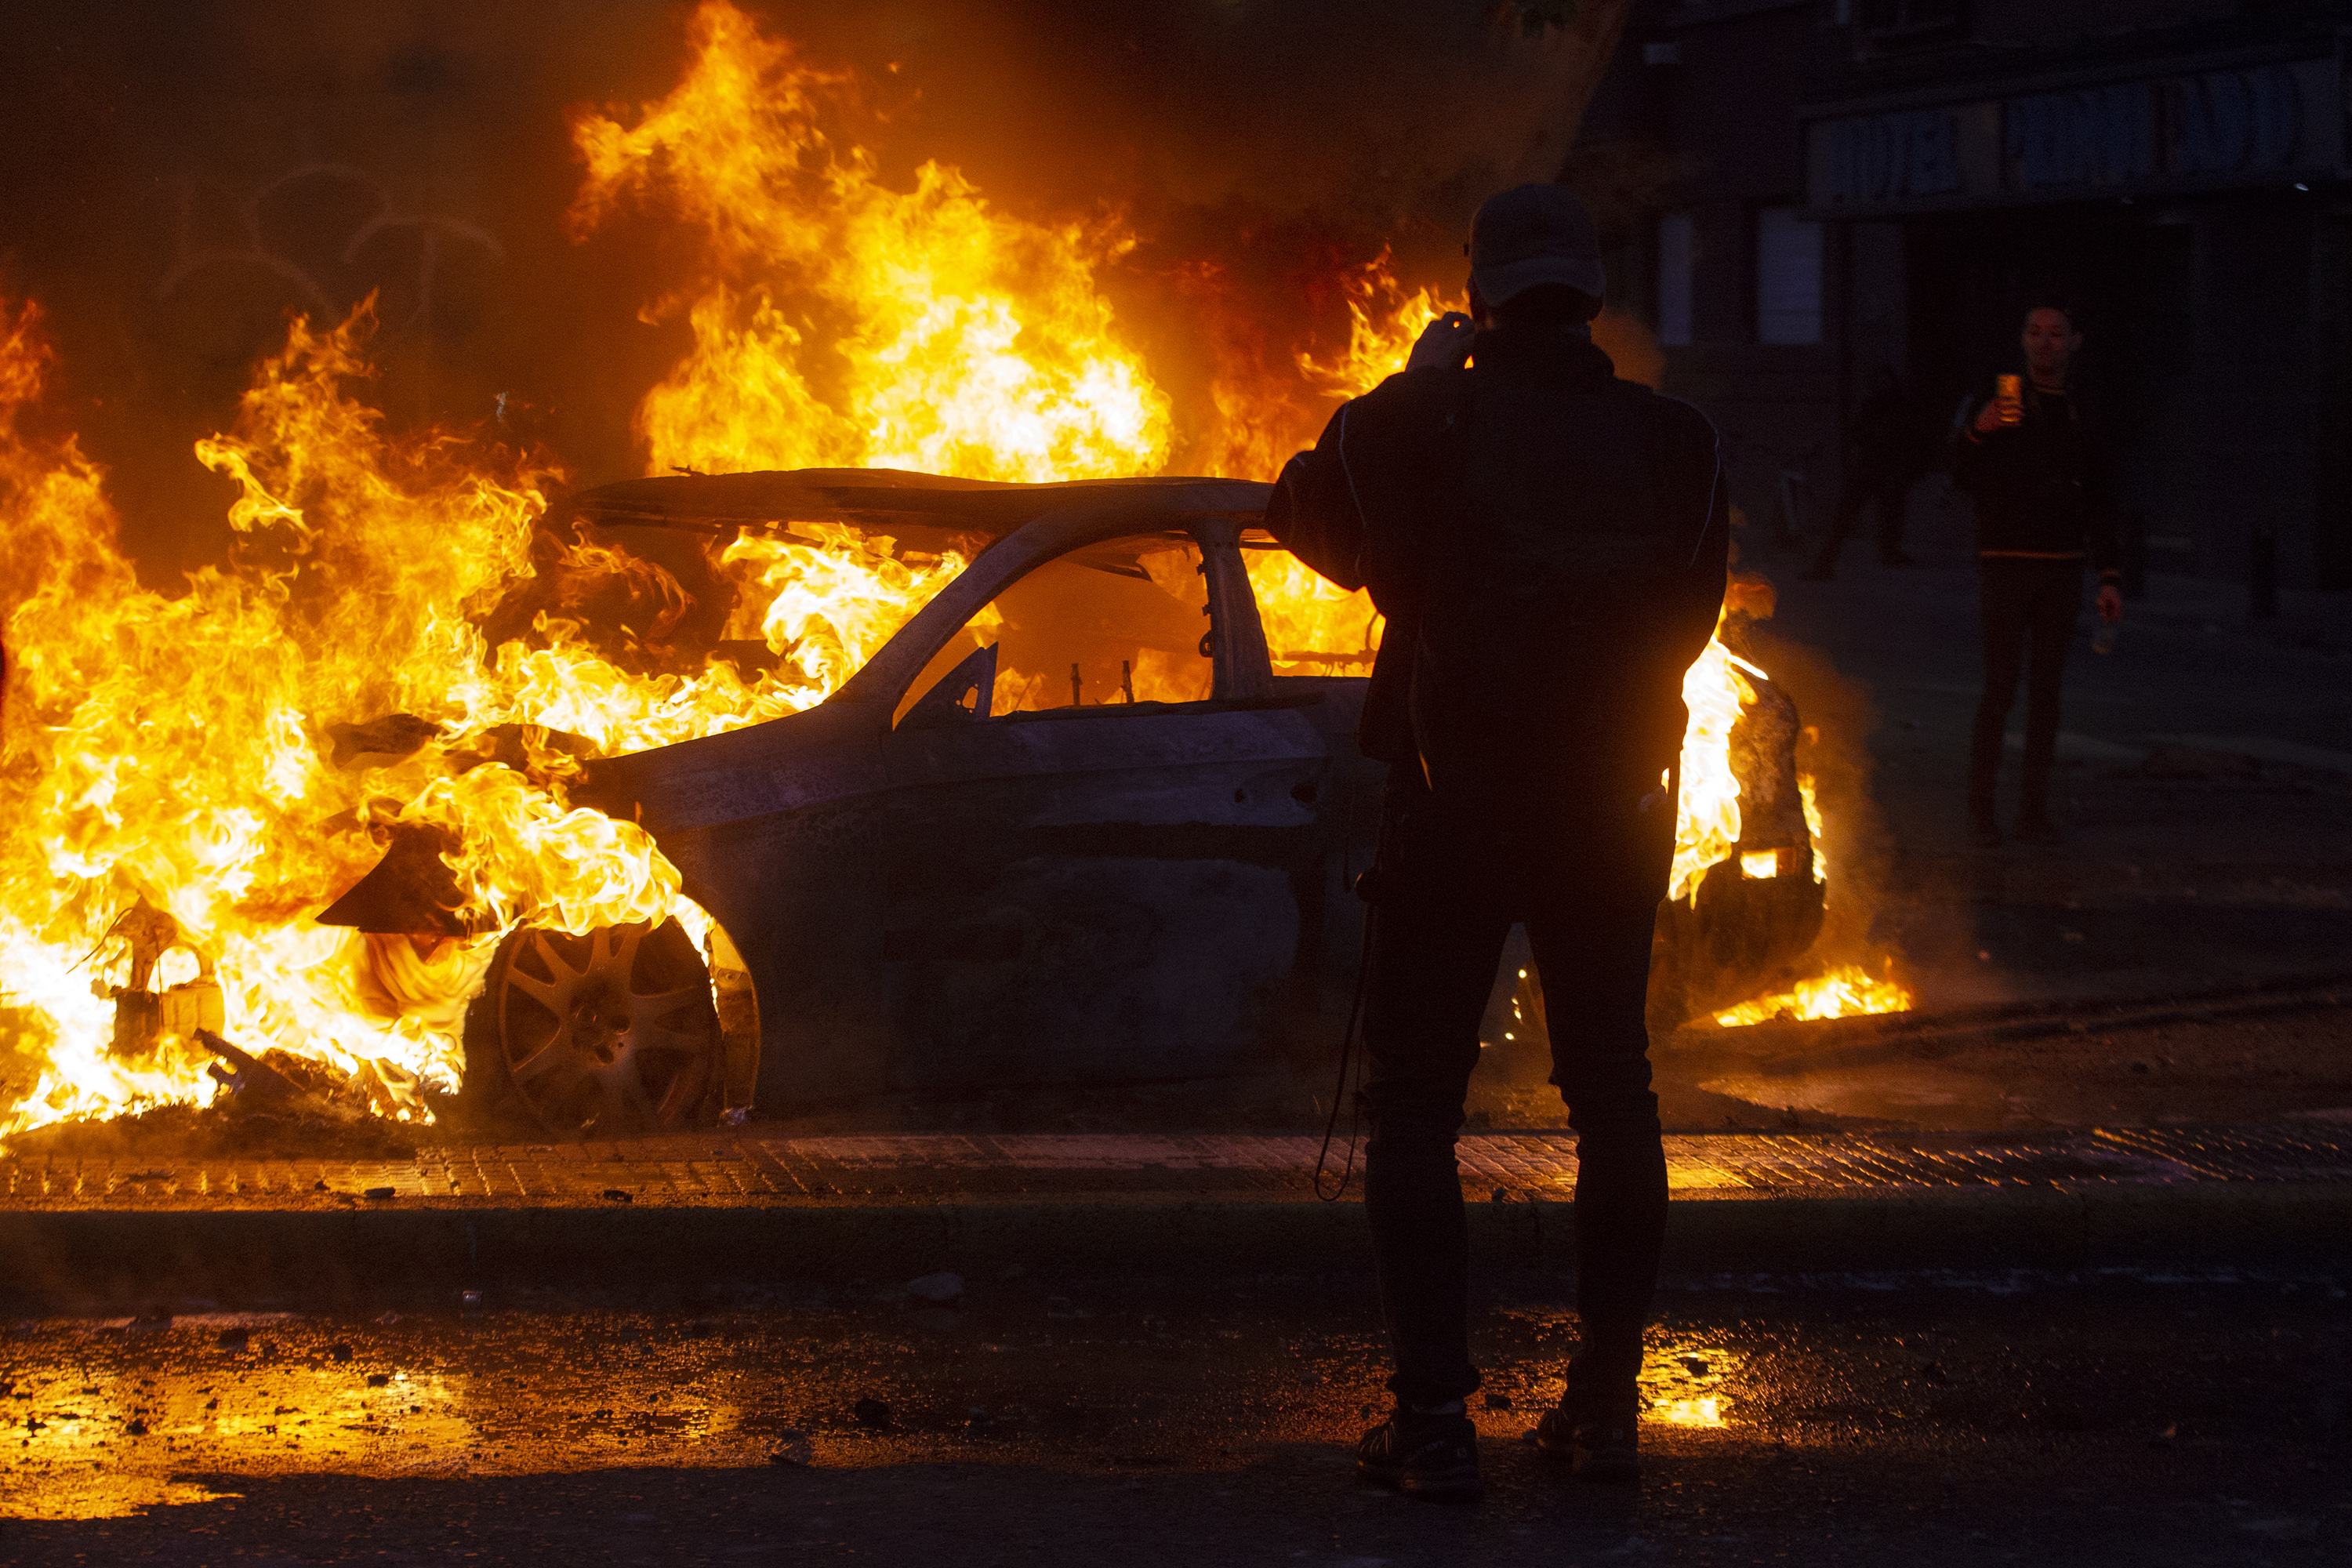 TOPSHOT - Men take pictures of a burning car during violent protests in Santiago, on October 19, 2019. - Chile's president declared a state of emergency in Santiago Friday night and gave the military responsibility for security after a day of violent protests over an increase in the price of metro tickets. (Photo by CLAUDIO REYES / AFP) (Photo by CLAUDIO REYES/AFP via Getty Images)